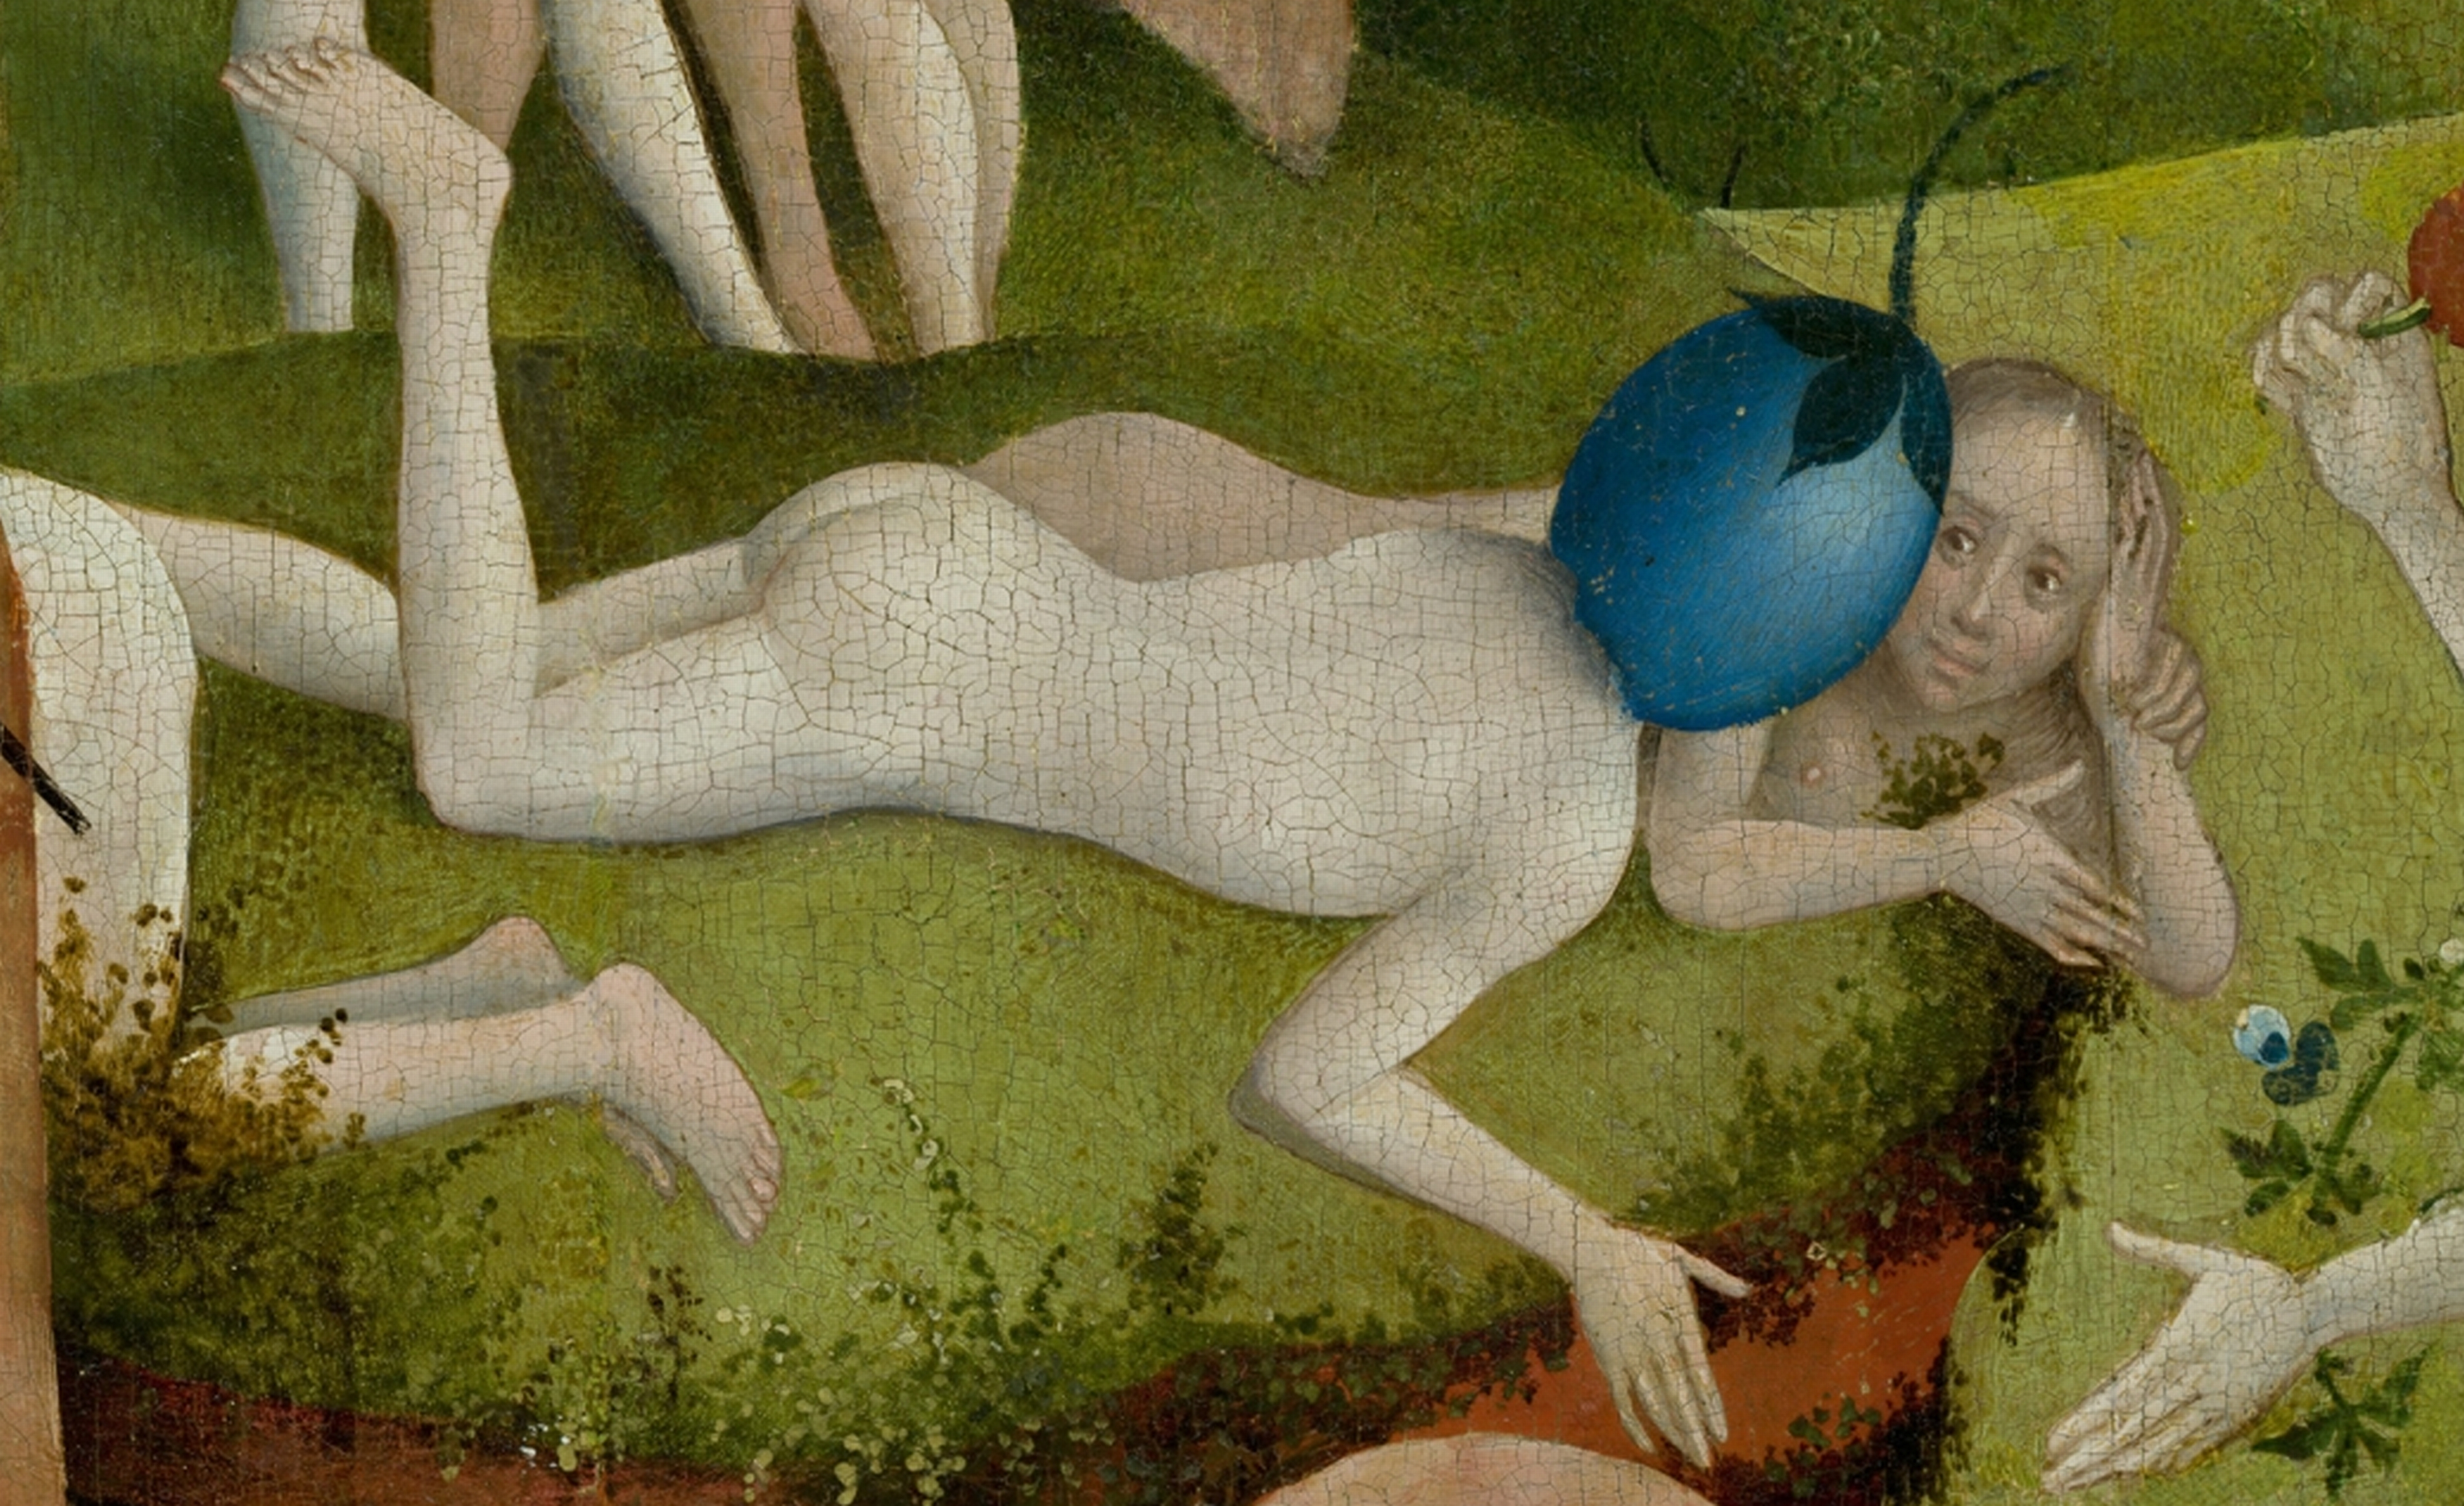 Bosch's Garden of Earthly Delights featured in Hallowed Be Thy Fall #SymbolismSaturday